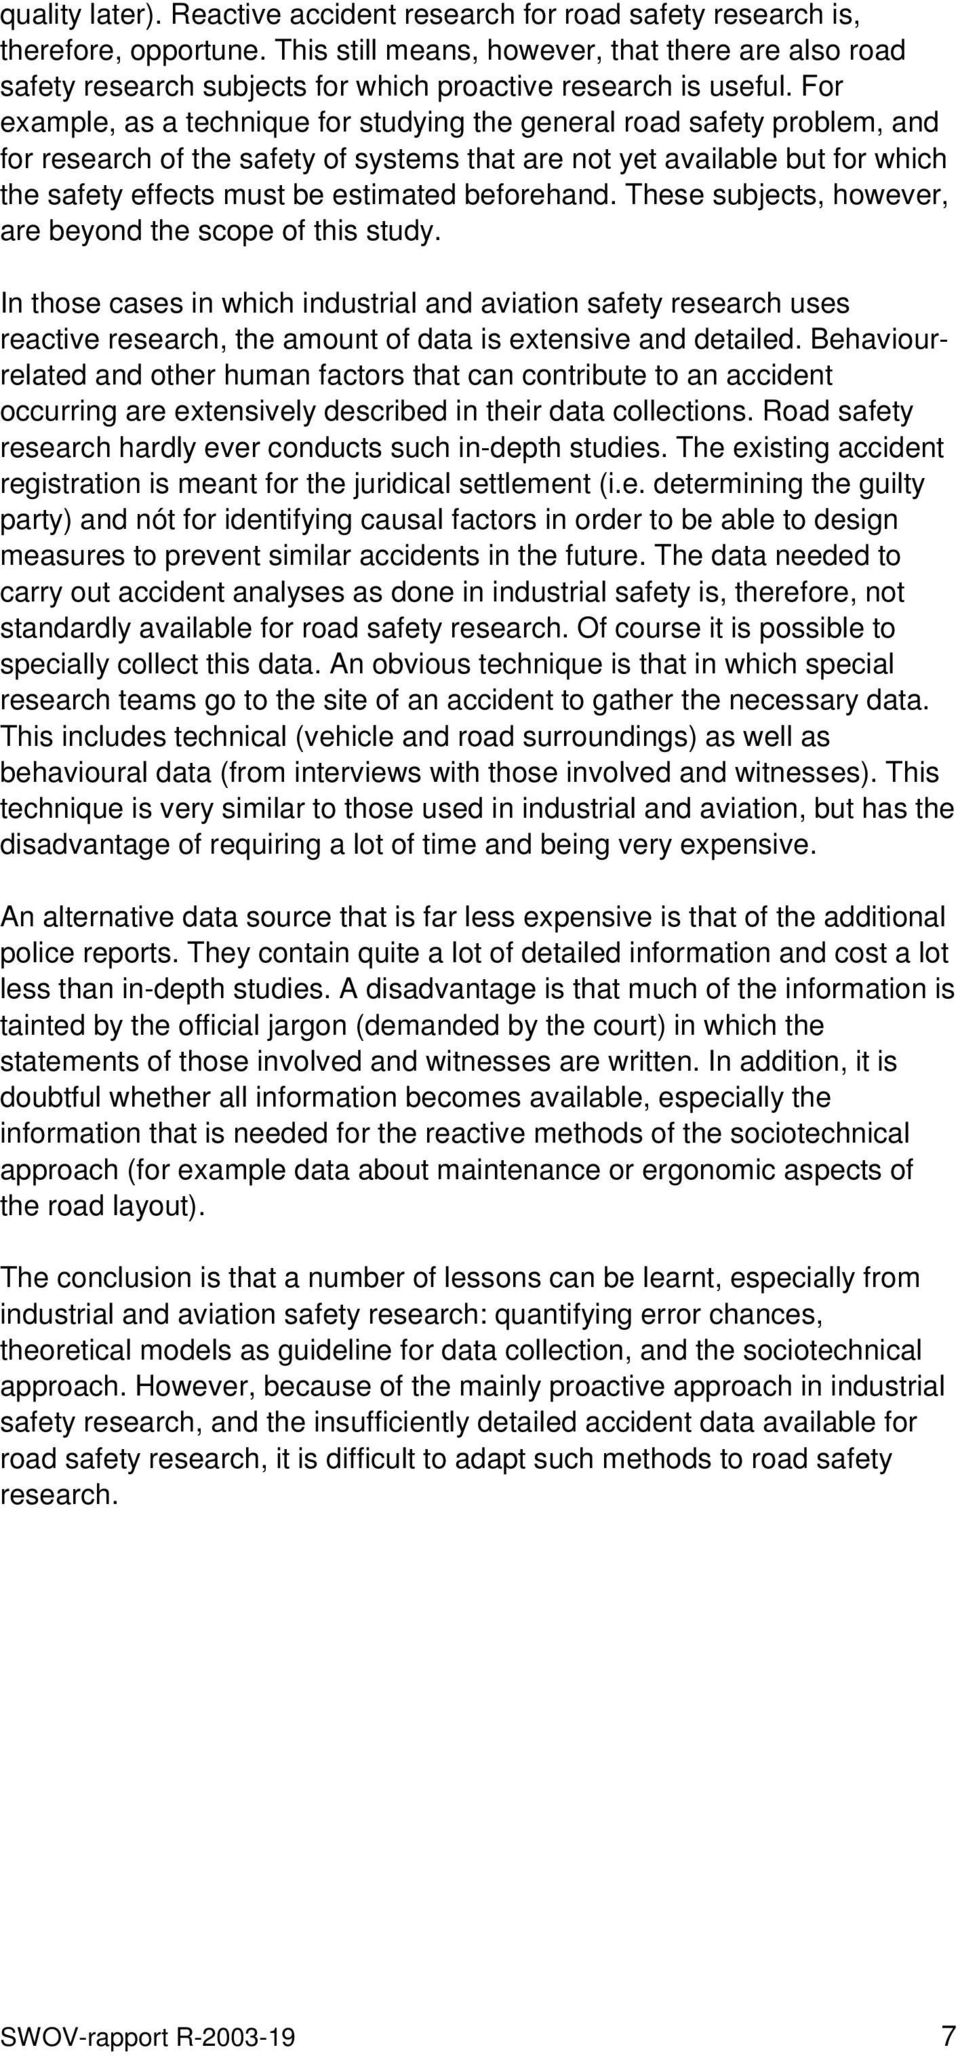 For example, as a technique for studying the general road safety problem, and for research of the safety of systems that are not yet available but for which the safety effects must be estimated